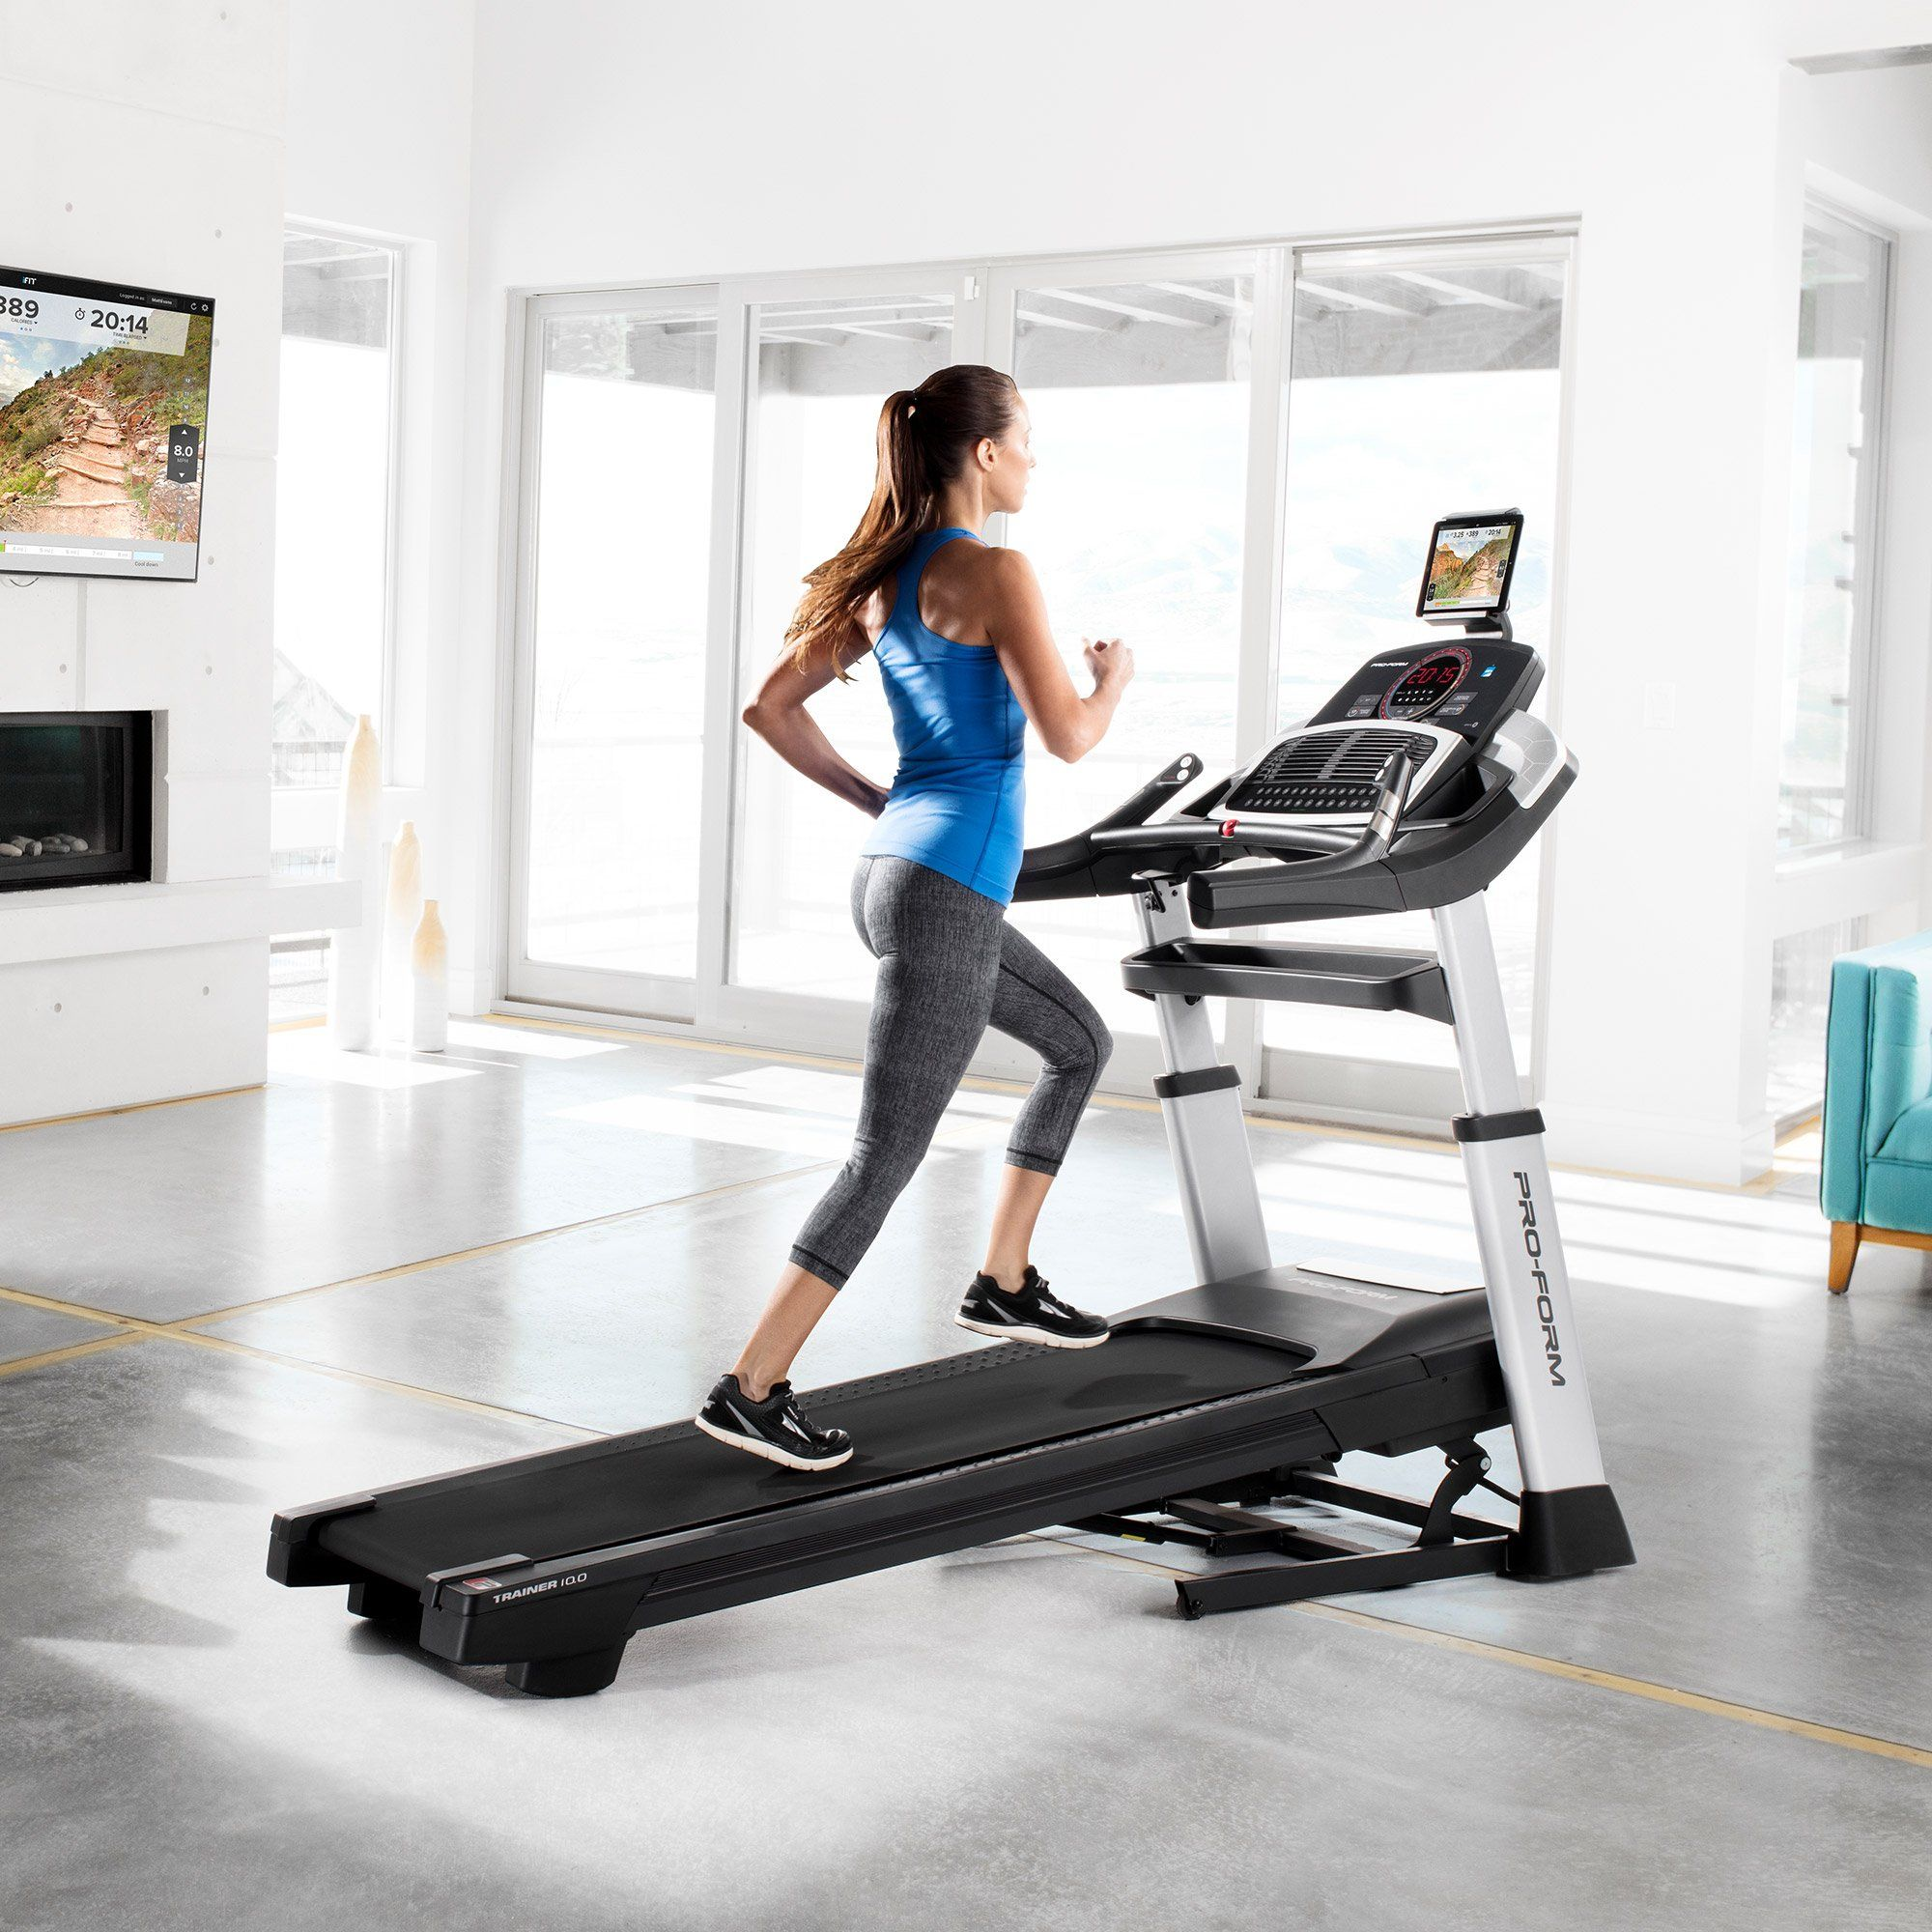 Proform Trainer 10.0 Treadmill with 1Year iFit Coach